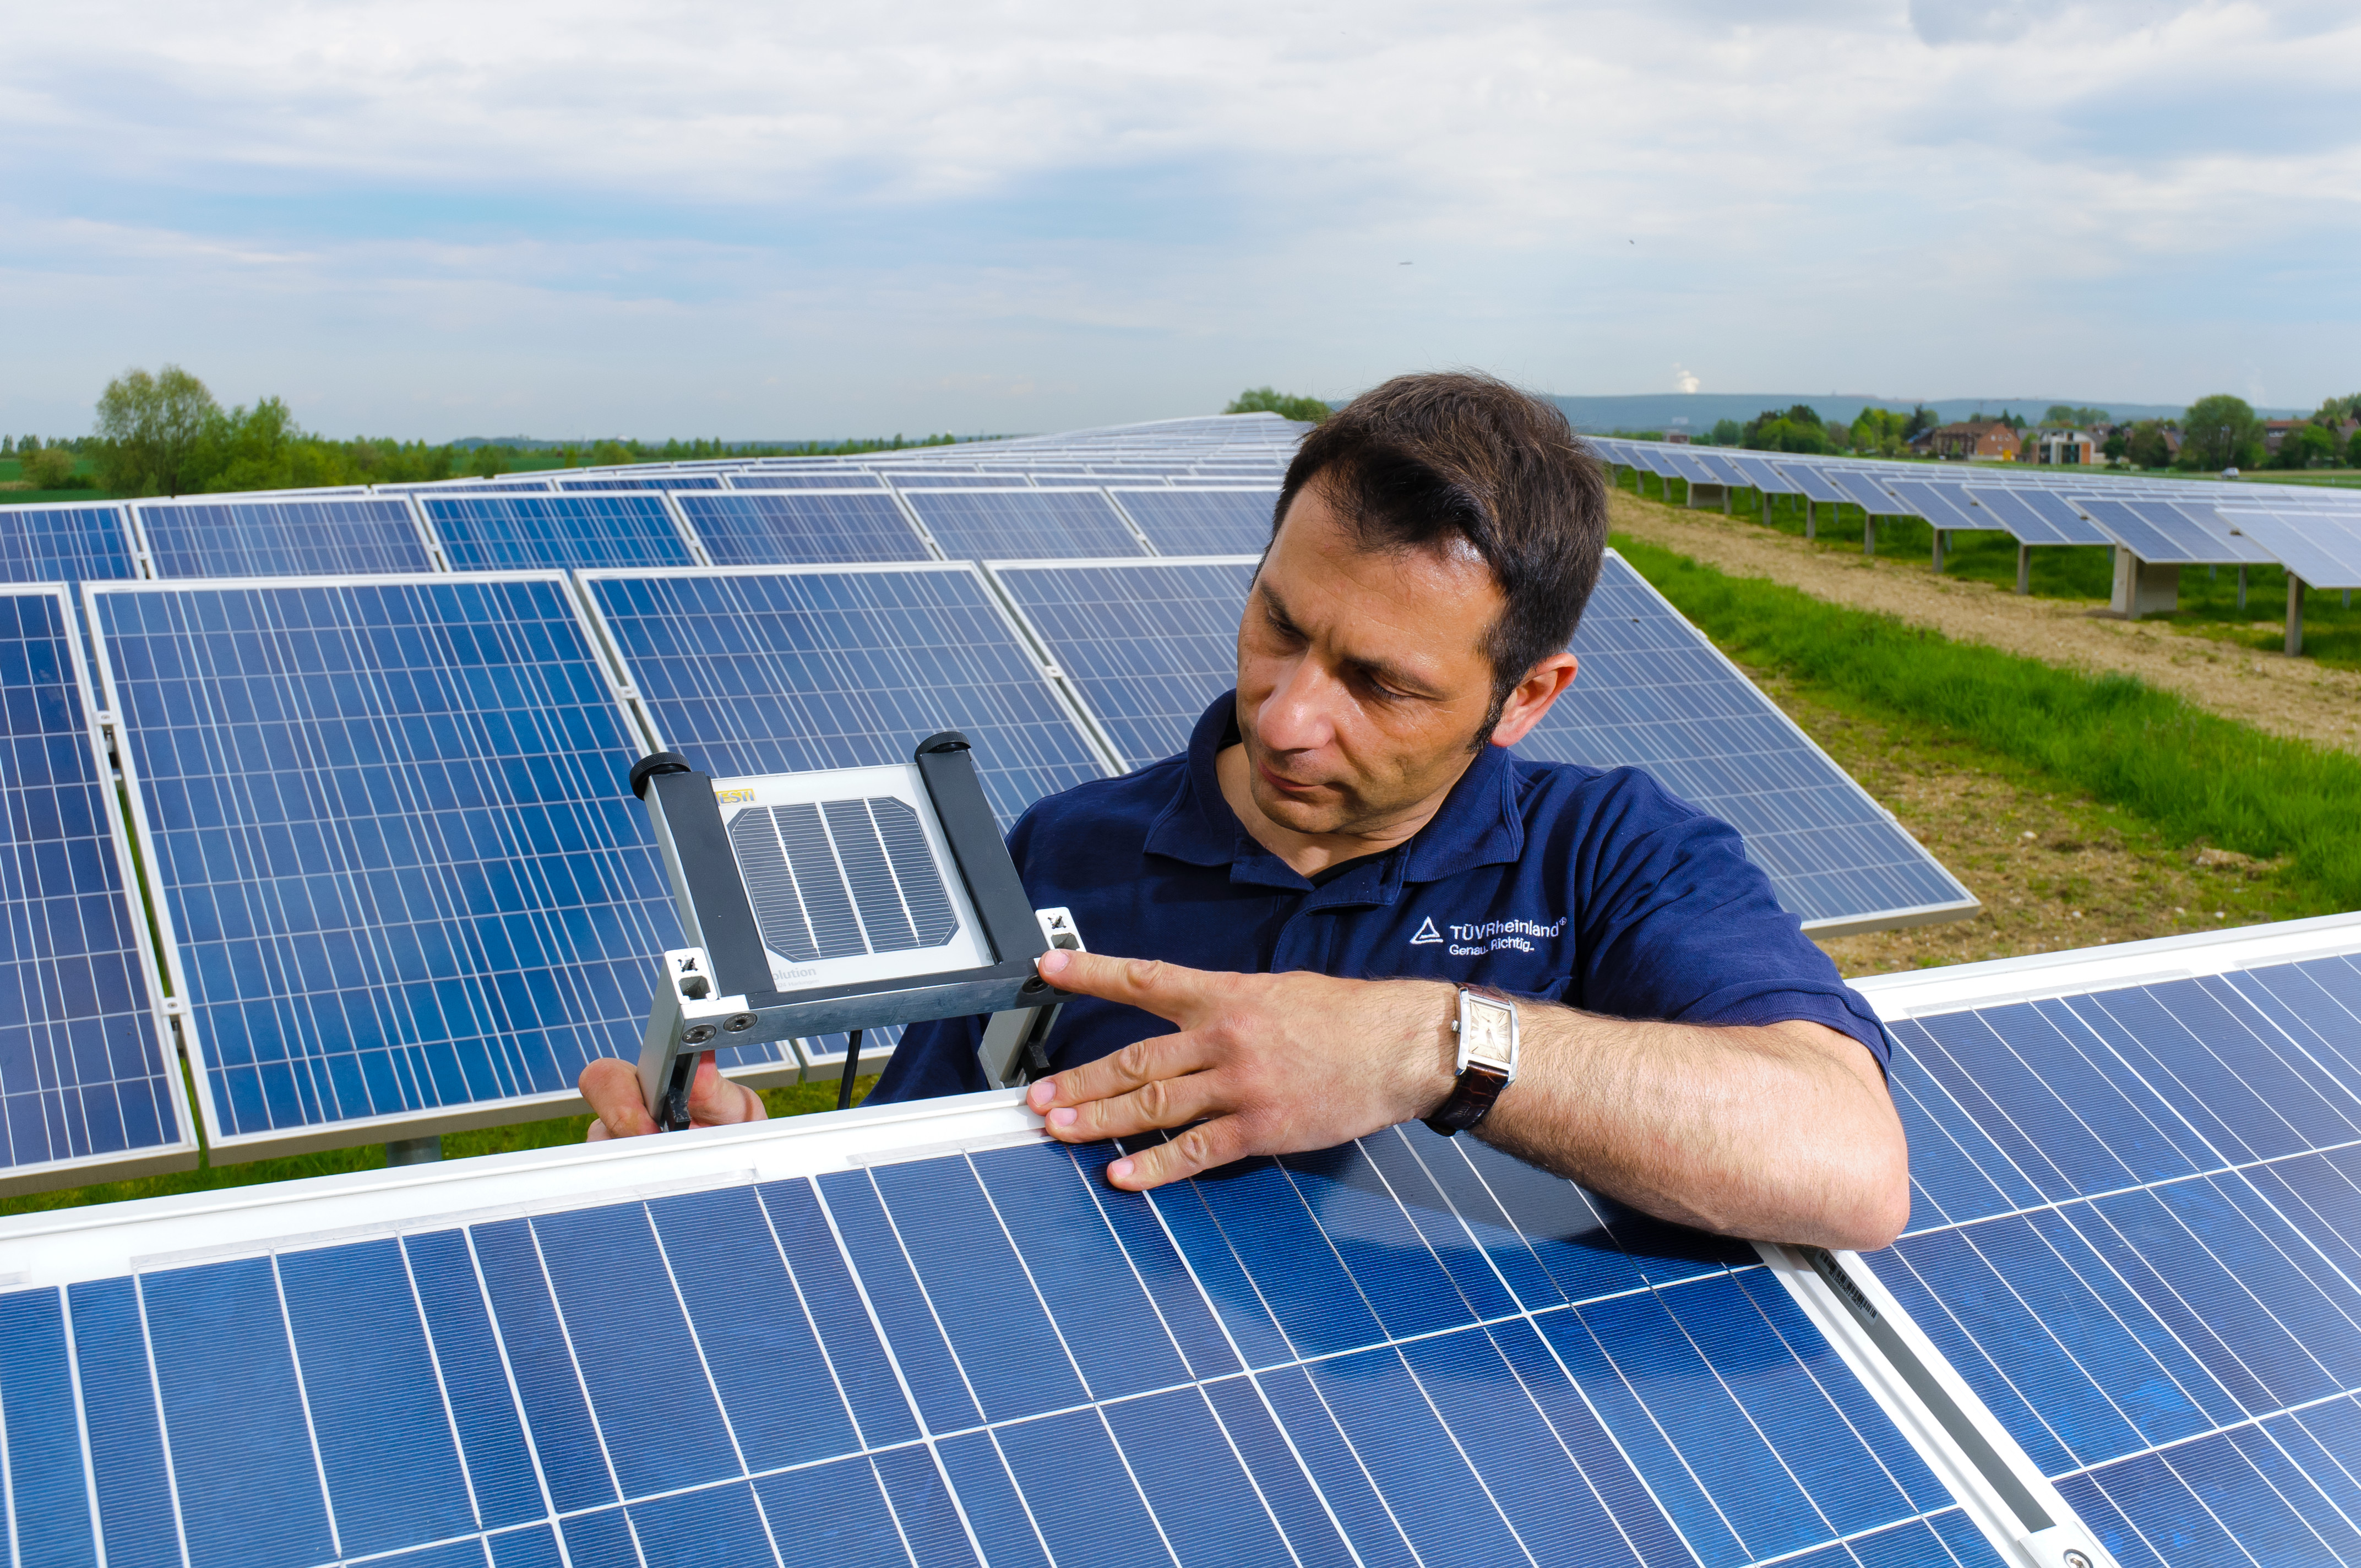 Research project on the performance of PV systems worldwide | Sun ...